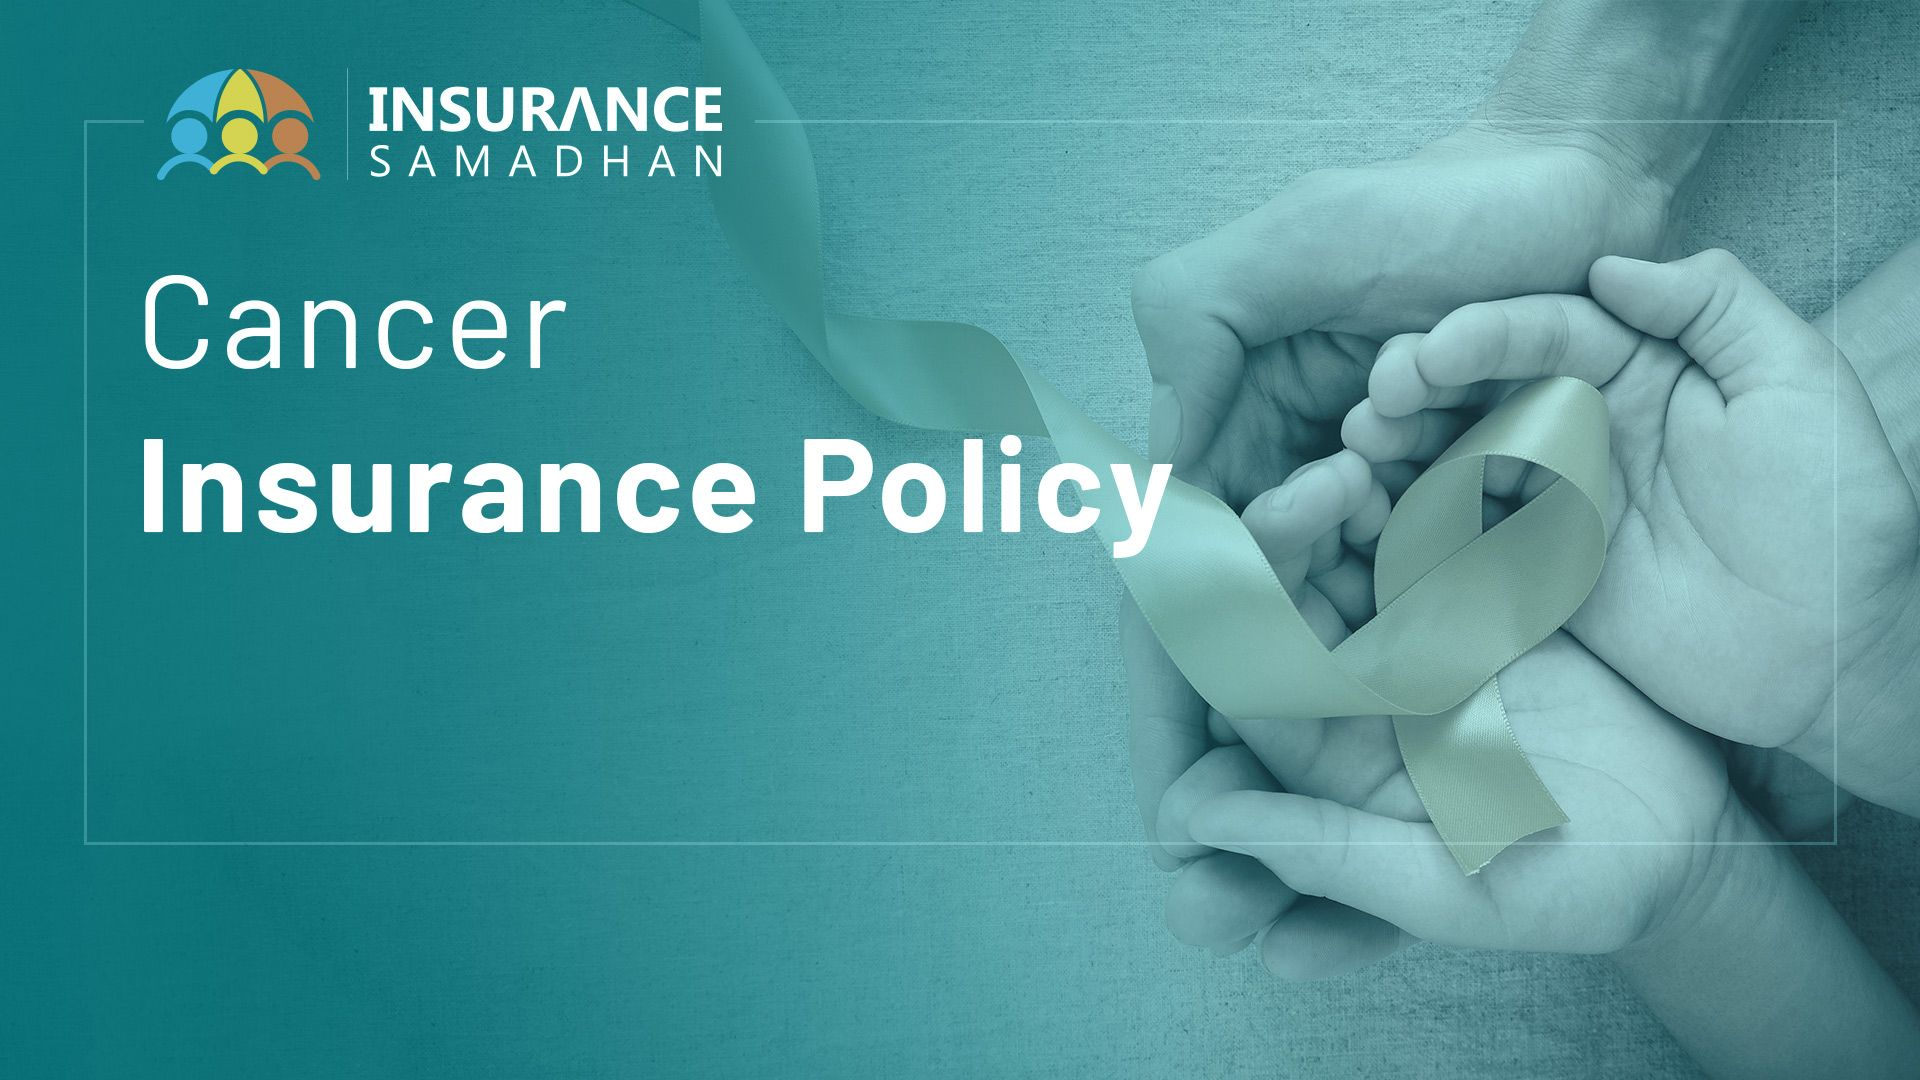 Cancer Insurance Policy: 5 Helpful tips before buying a Cancer Insurance Plan in India